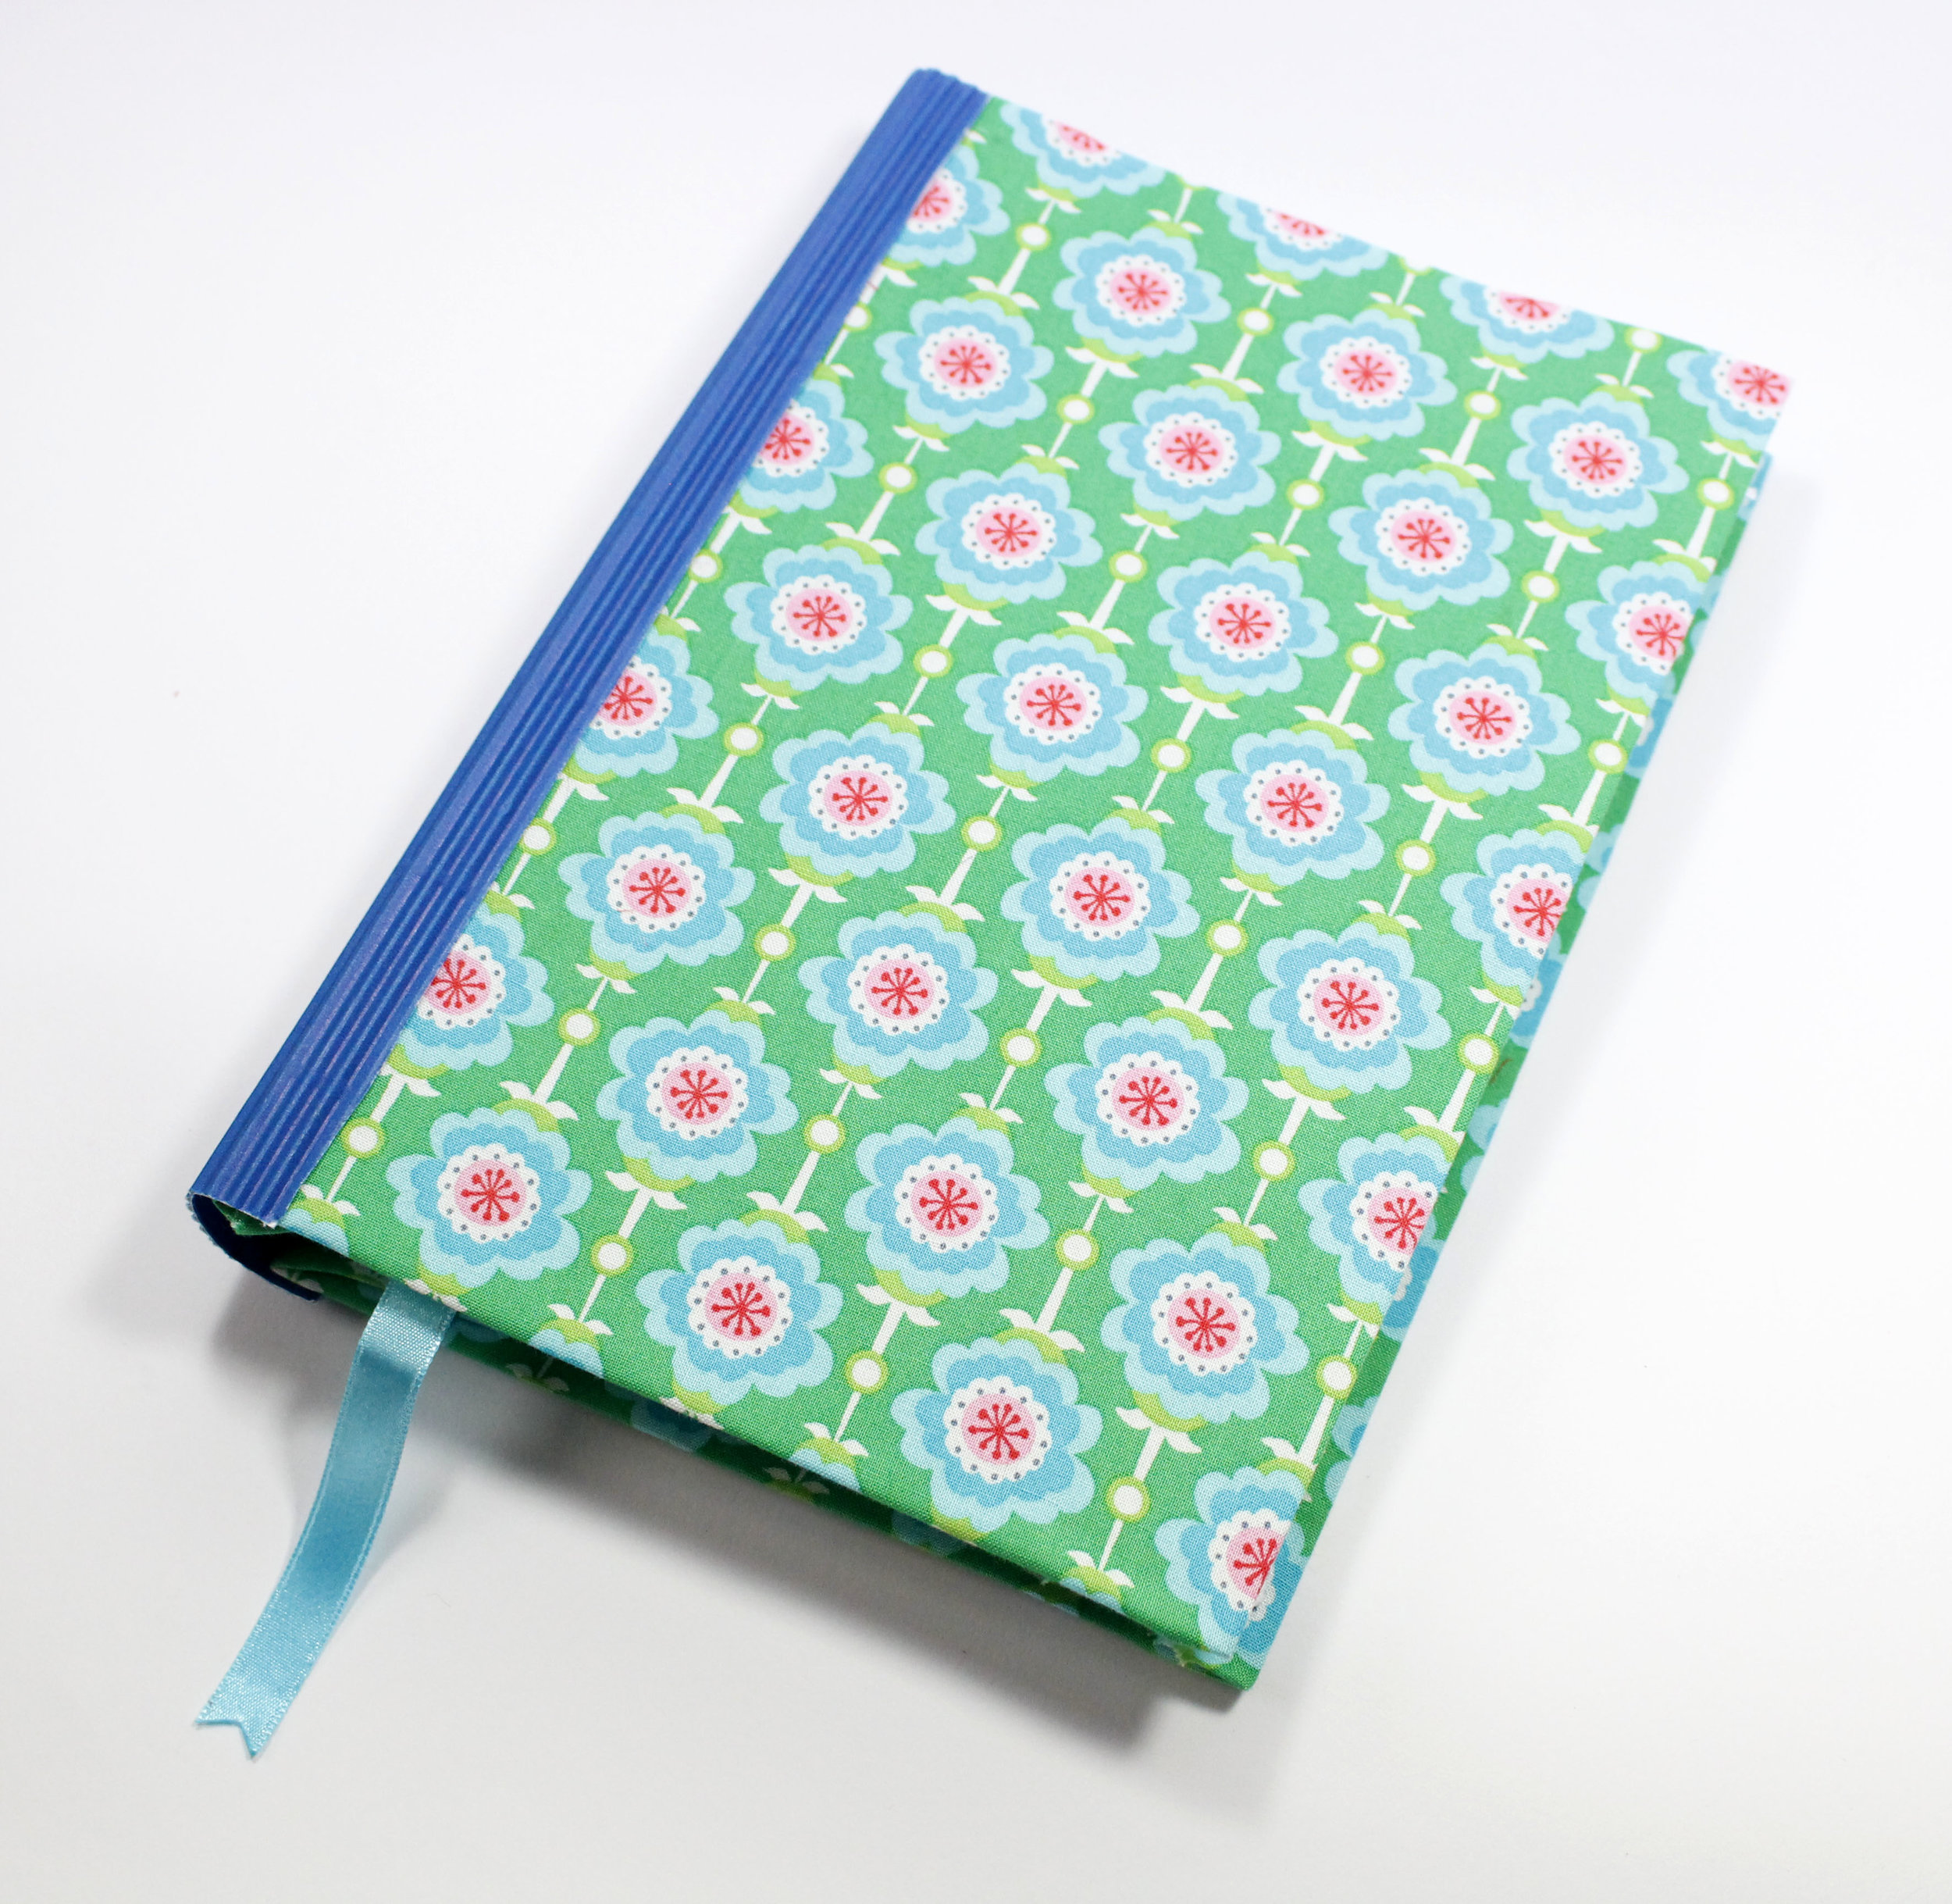 journal-retro-flowers-blue_2.JPG